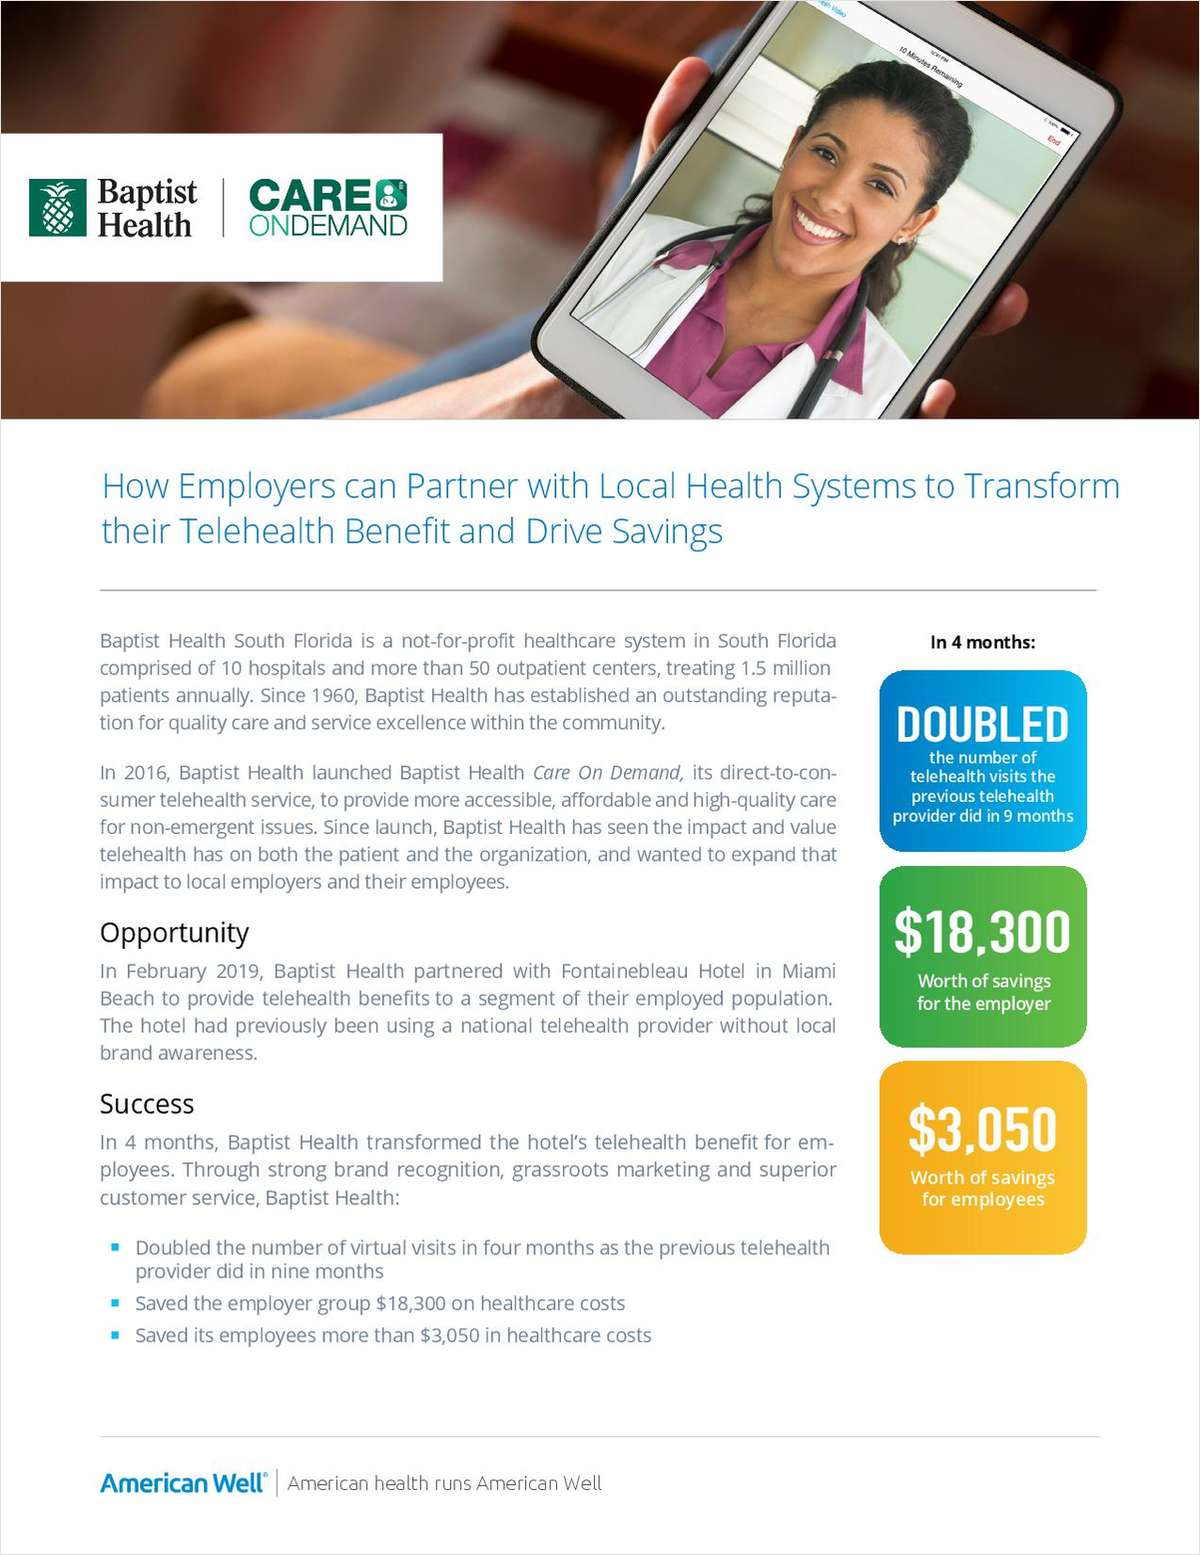 How Employers Can Partner with Local Health Systems to Transform their Telehealth Benefit and Drive Savings